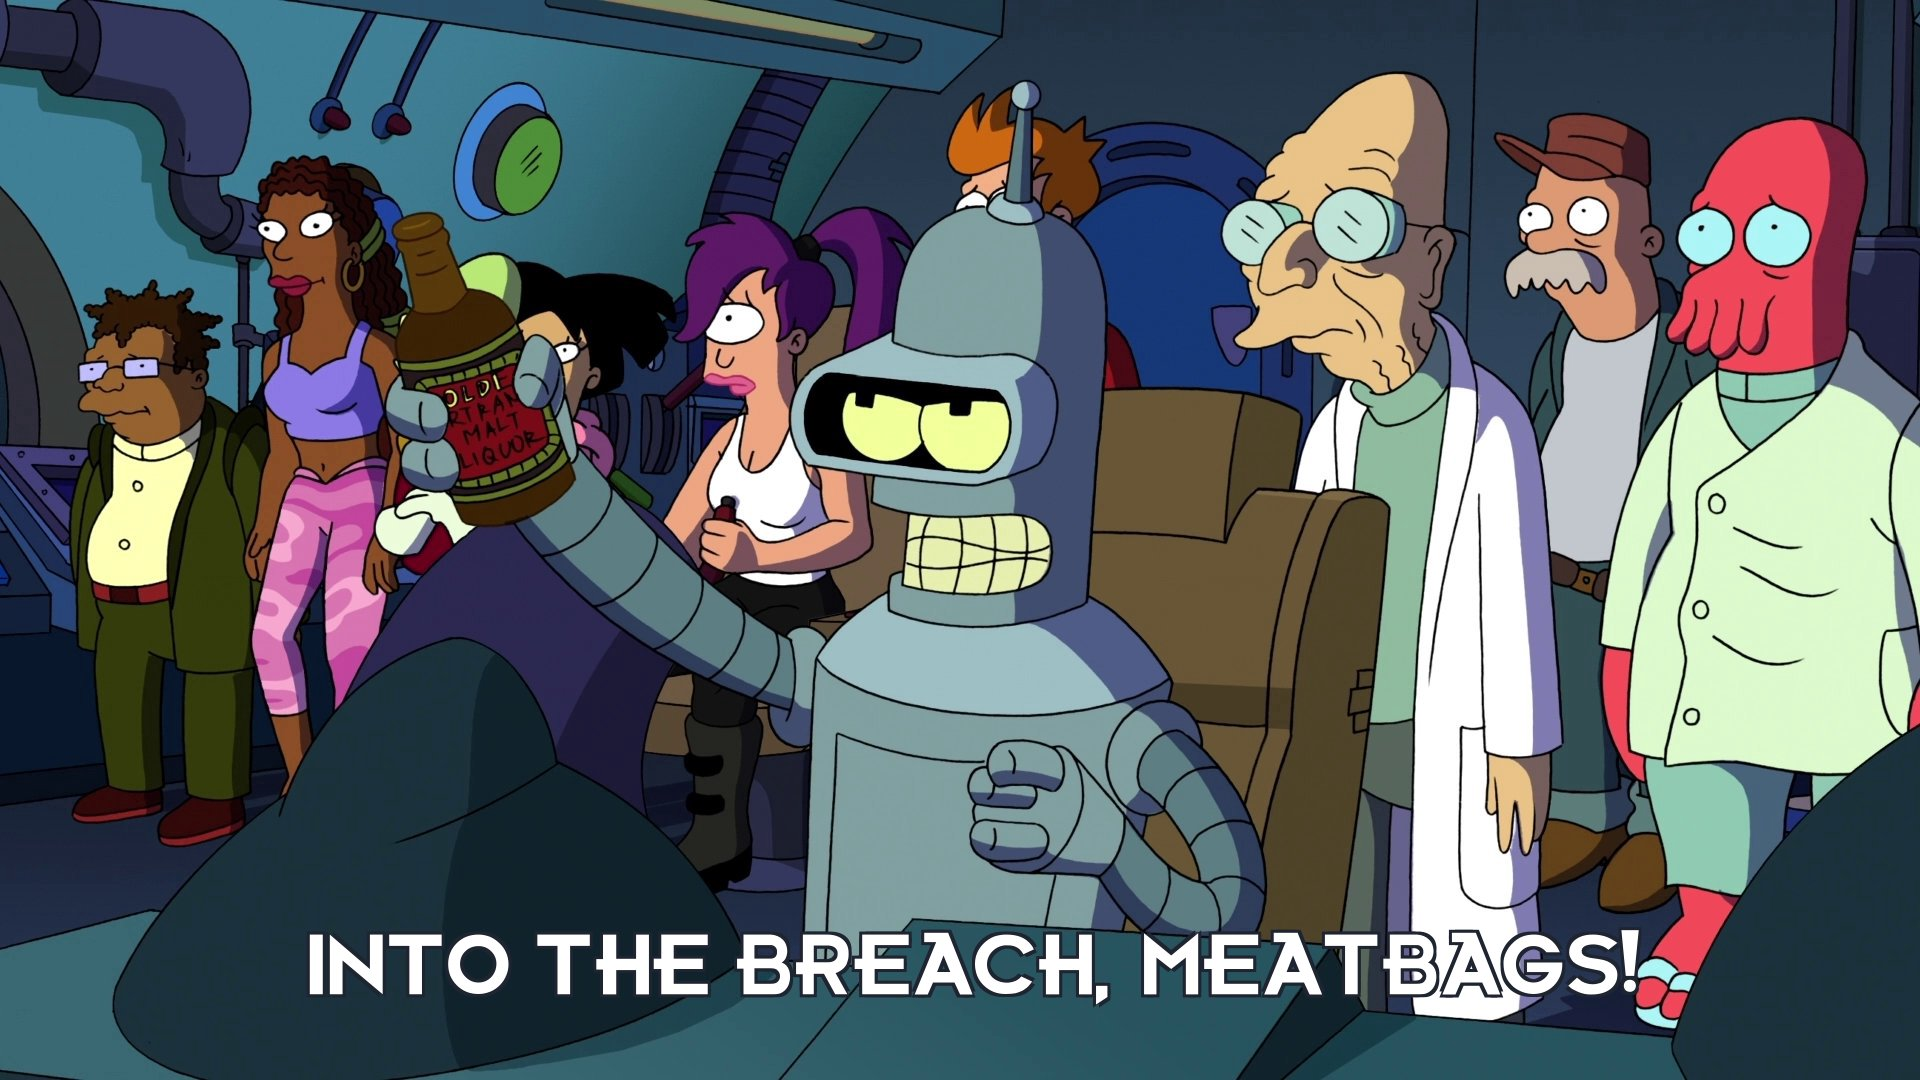 Bender Bending Rodriguez: Into the breach, meatbags!